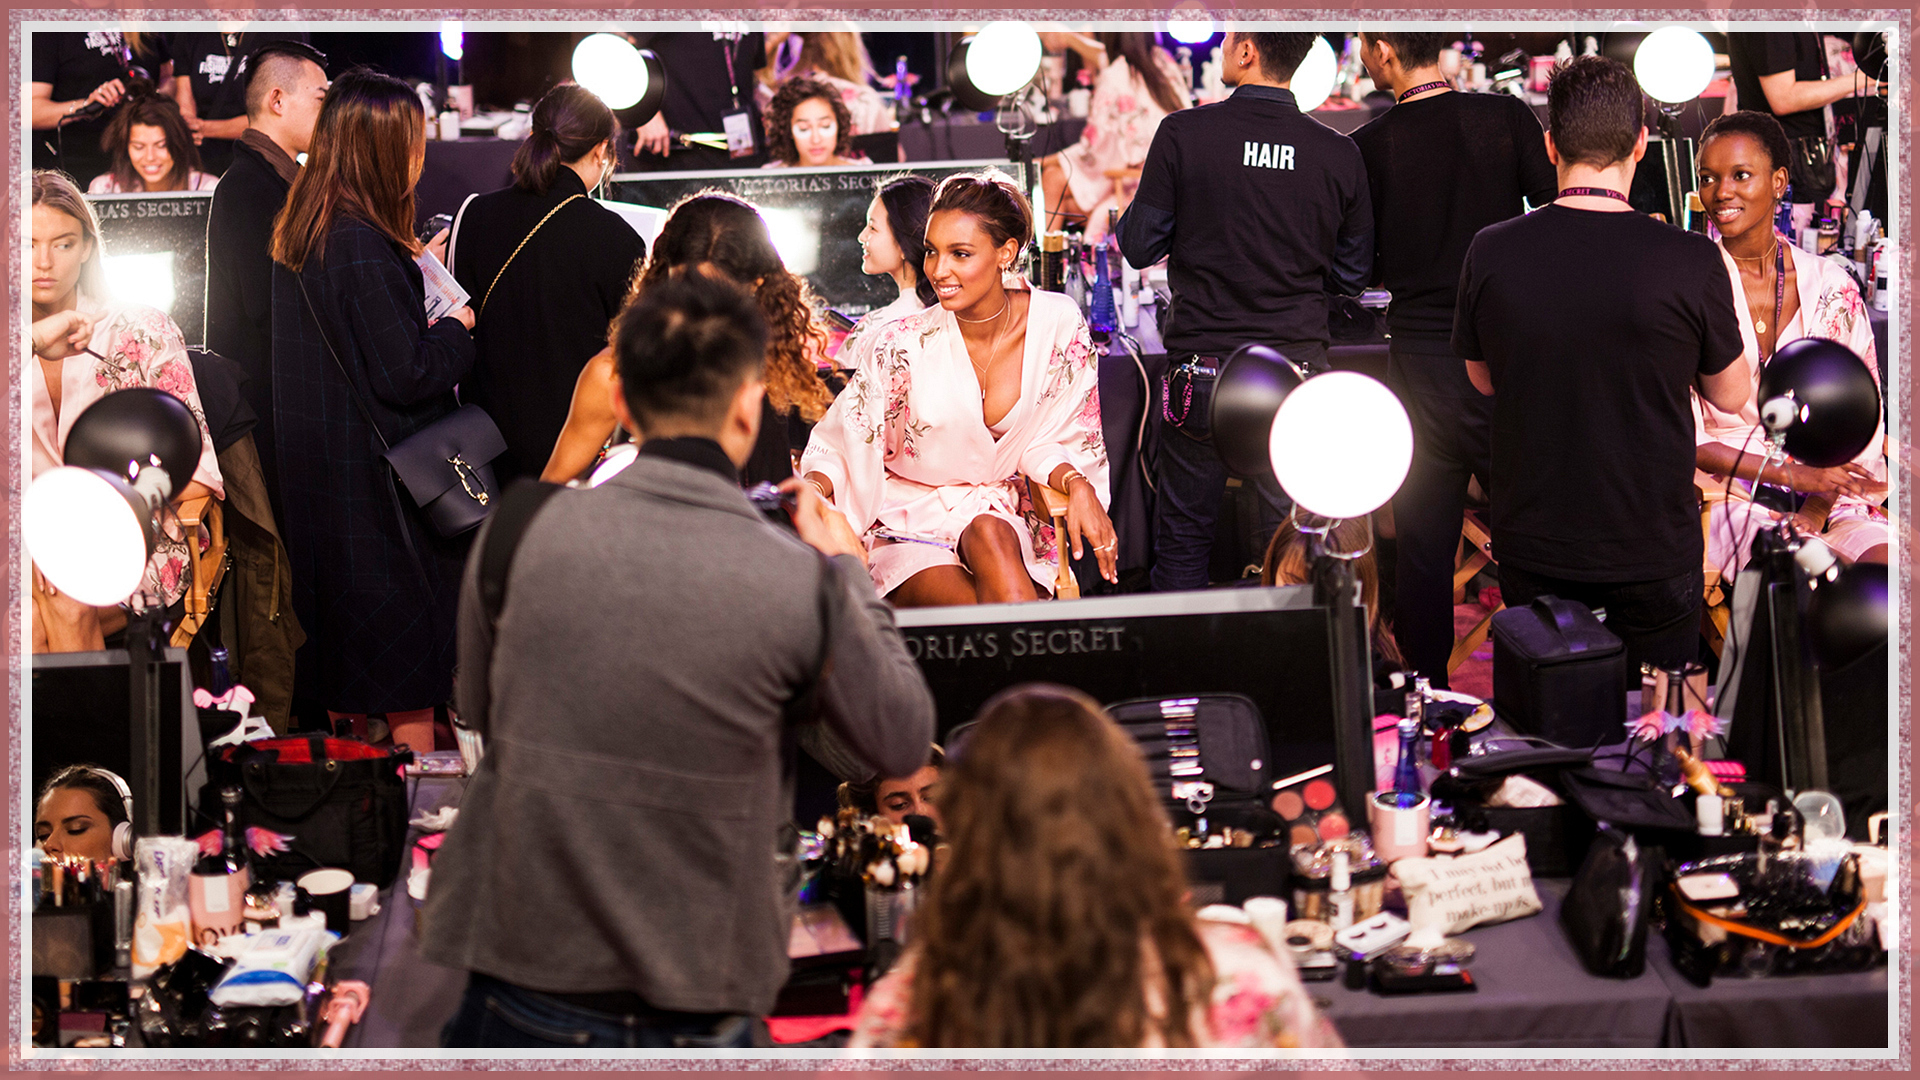 Let's go behind the scenes of the Victoria's Secret Fashion Show!